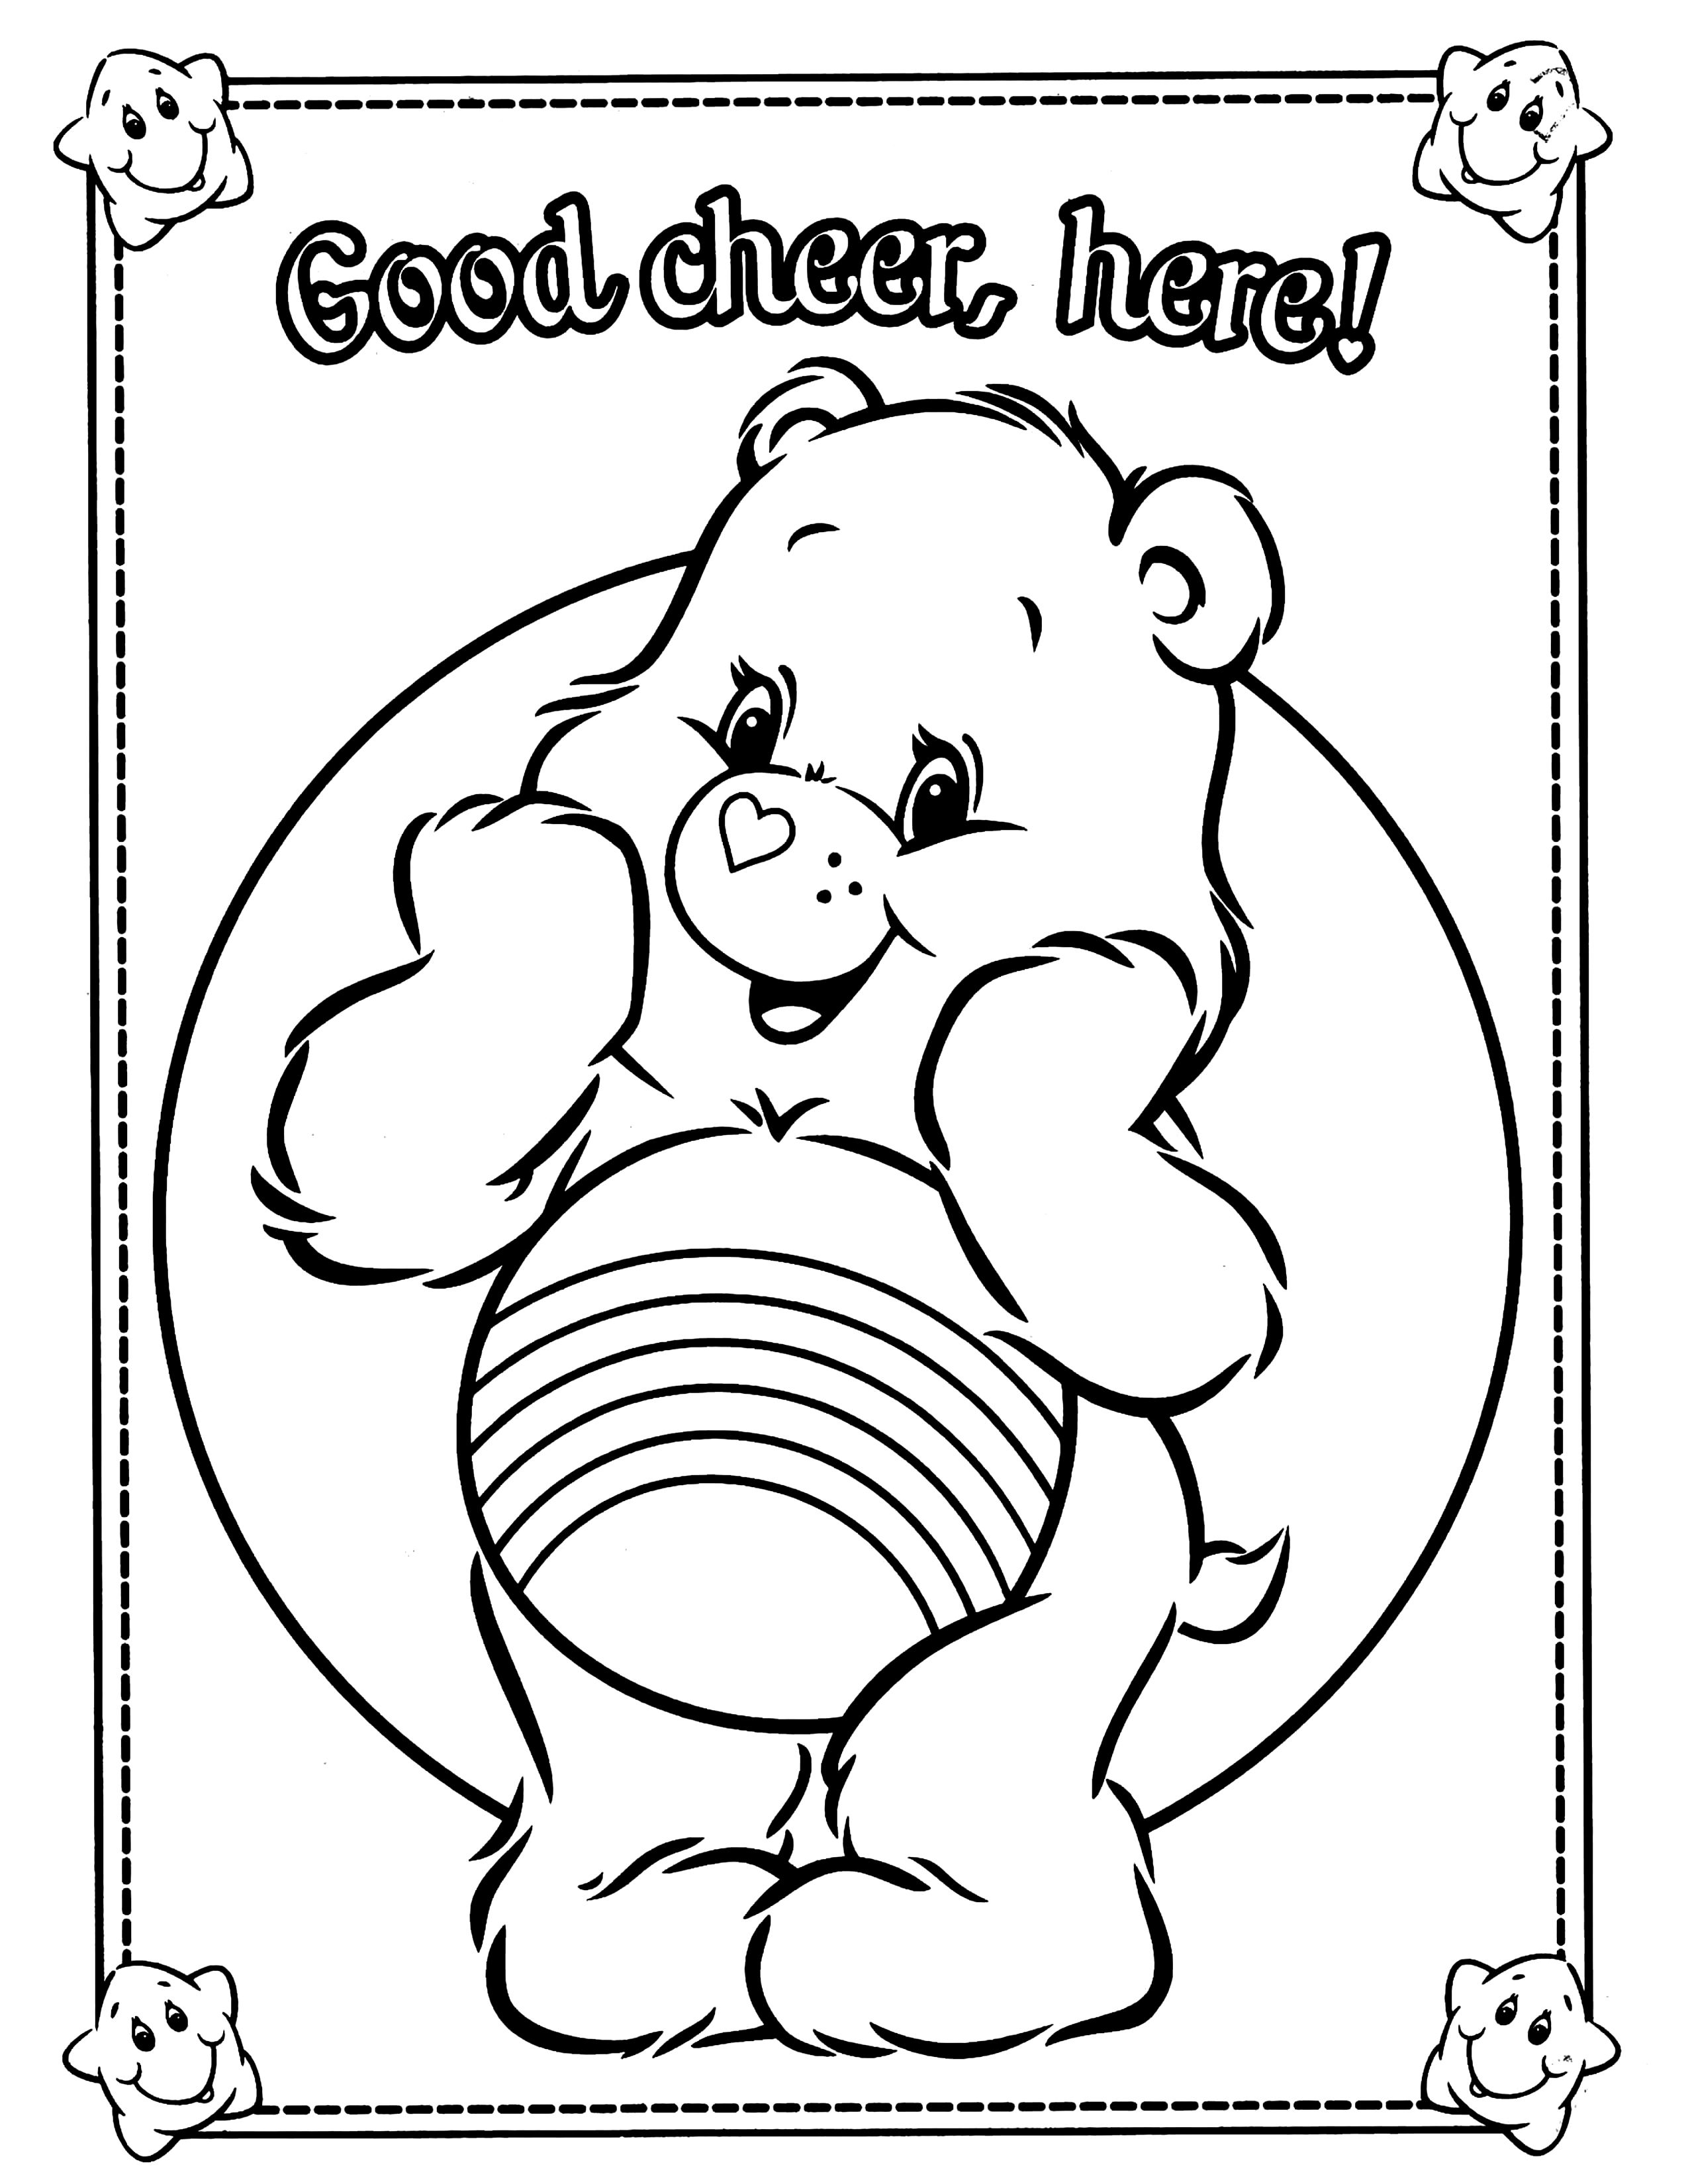 30 Care Bears Coloring Pages For Kids Bear Coloring Pages Care Bears Coloring Pages Bear Coloring Page